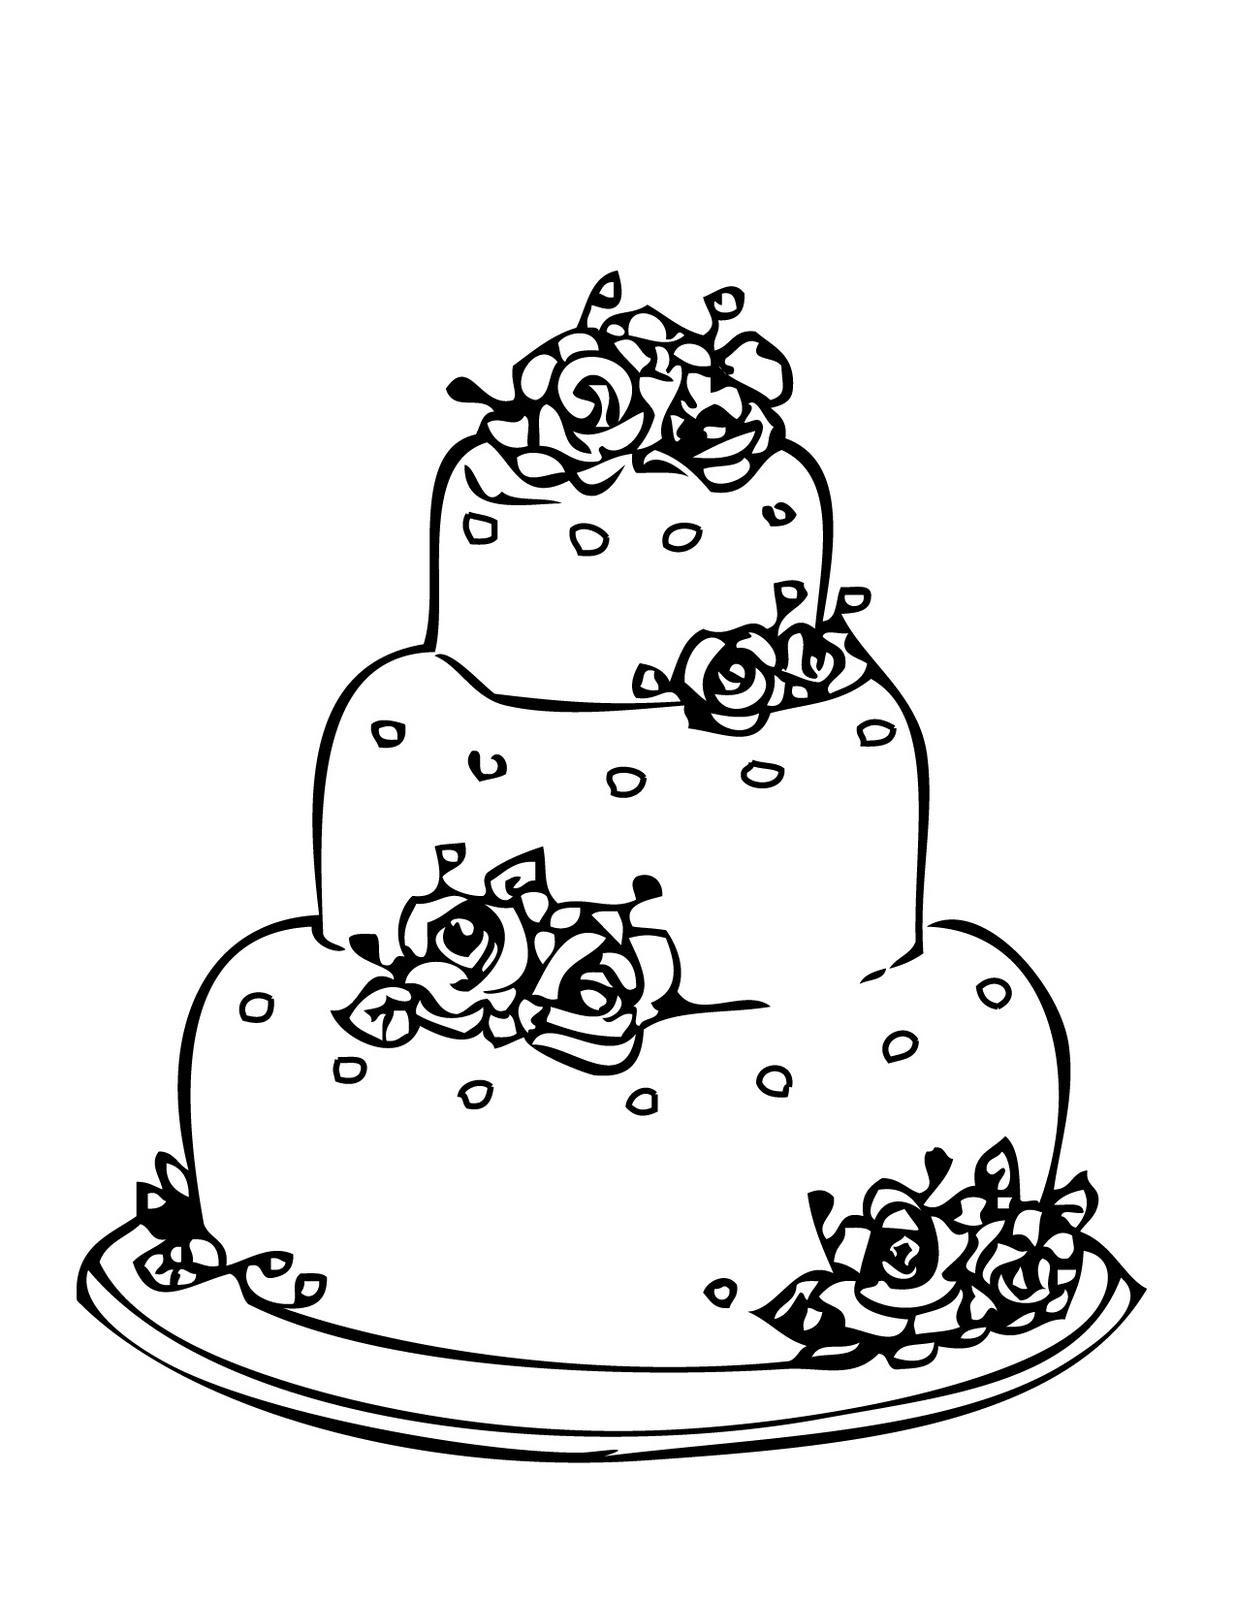 1236x1600 Cake Drawing Free Download Clip Art Free Clip Art On Clipart